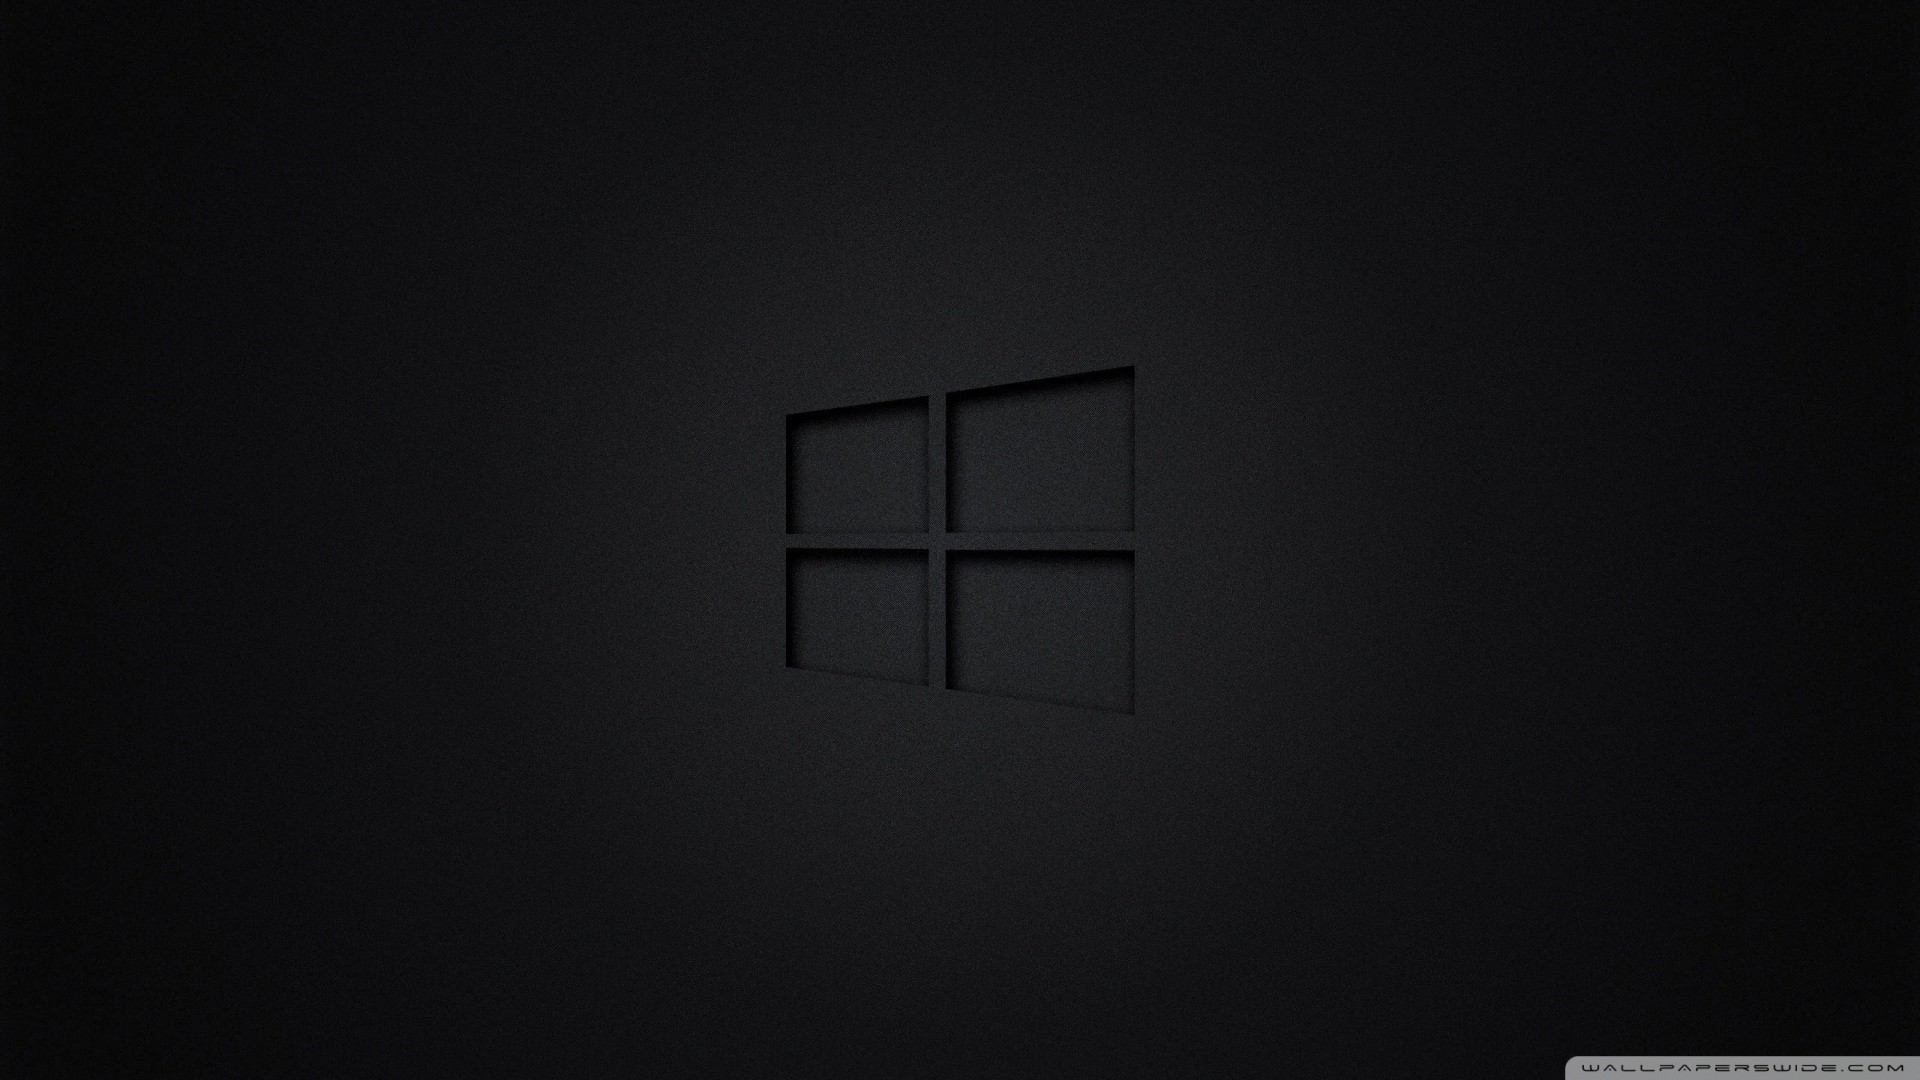 windows black wallpaper ·①